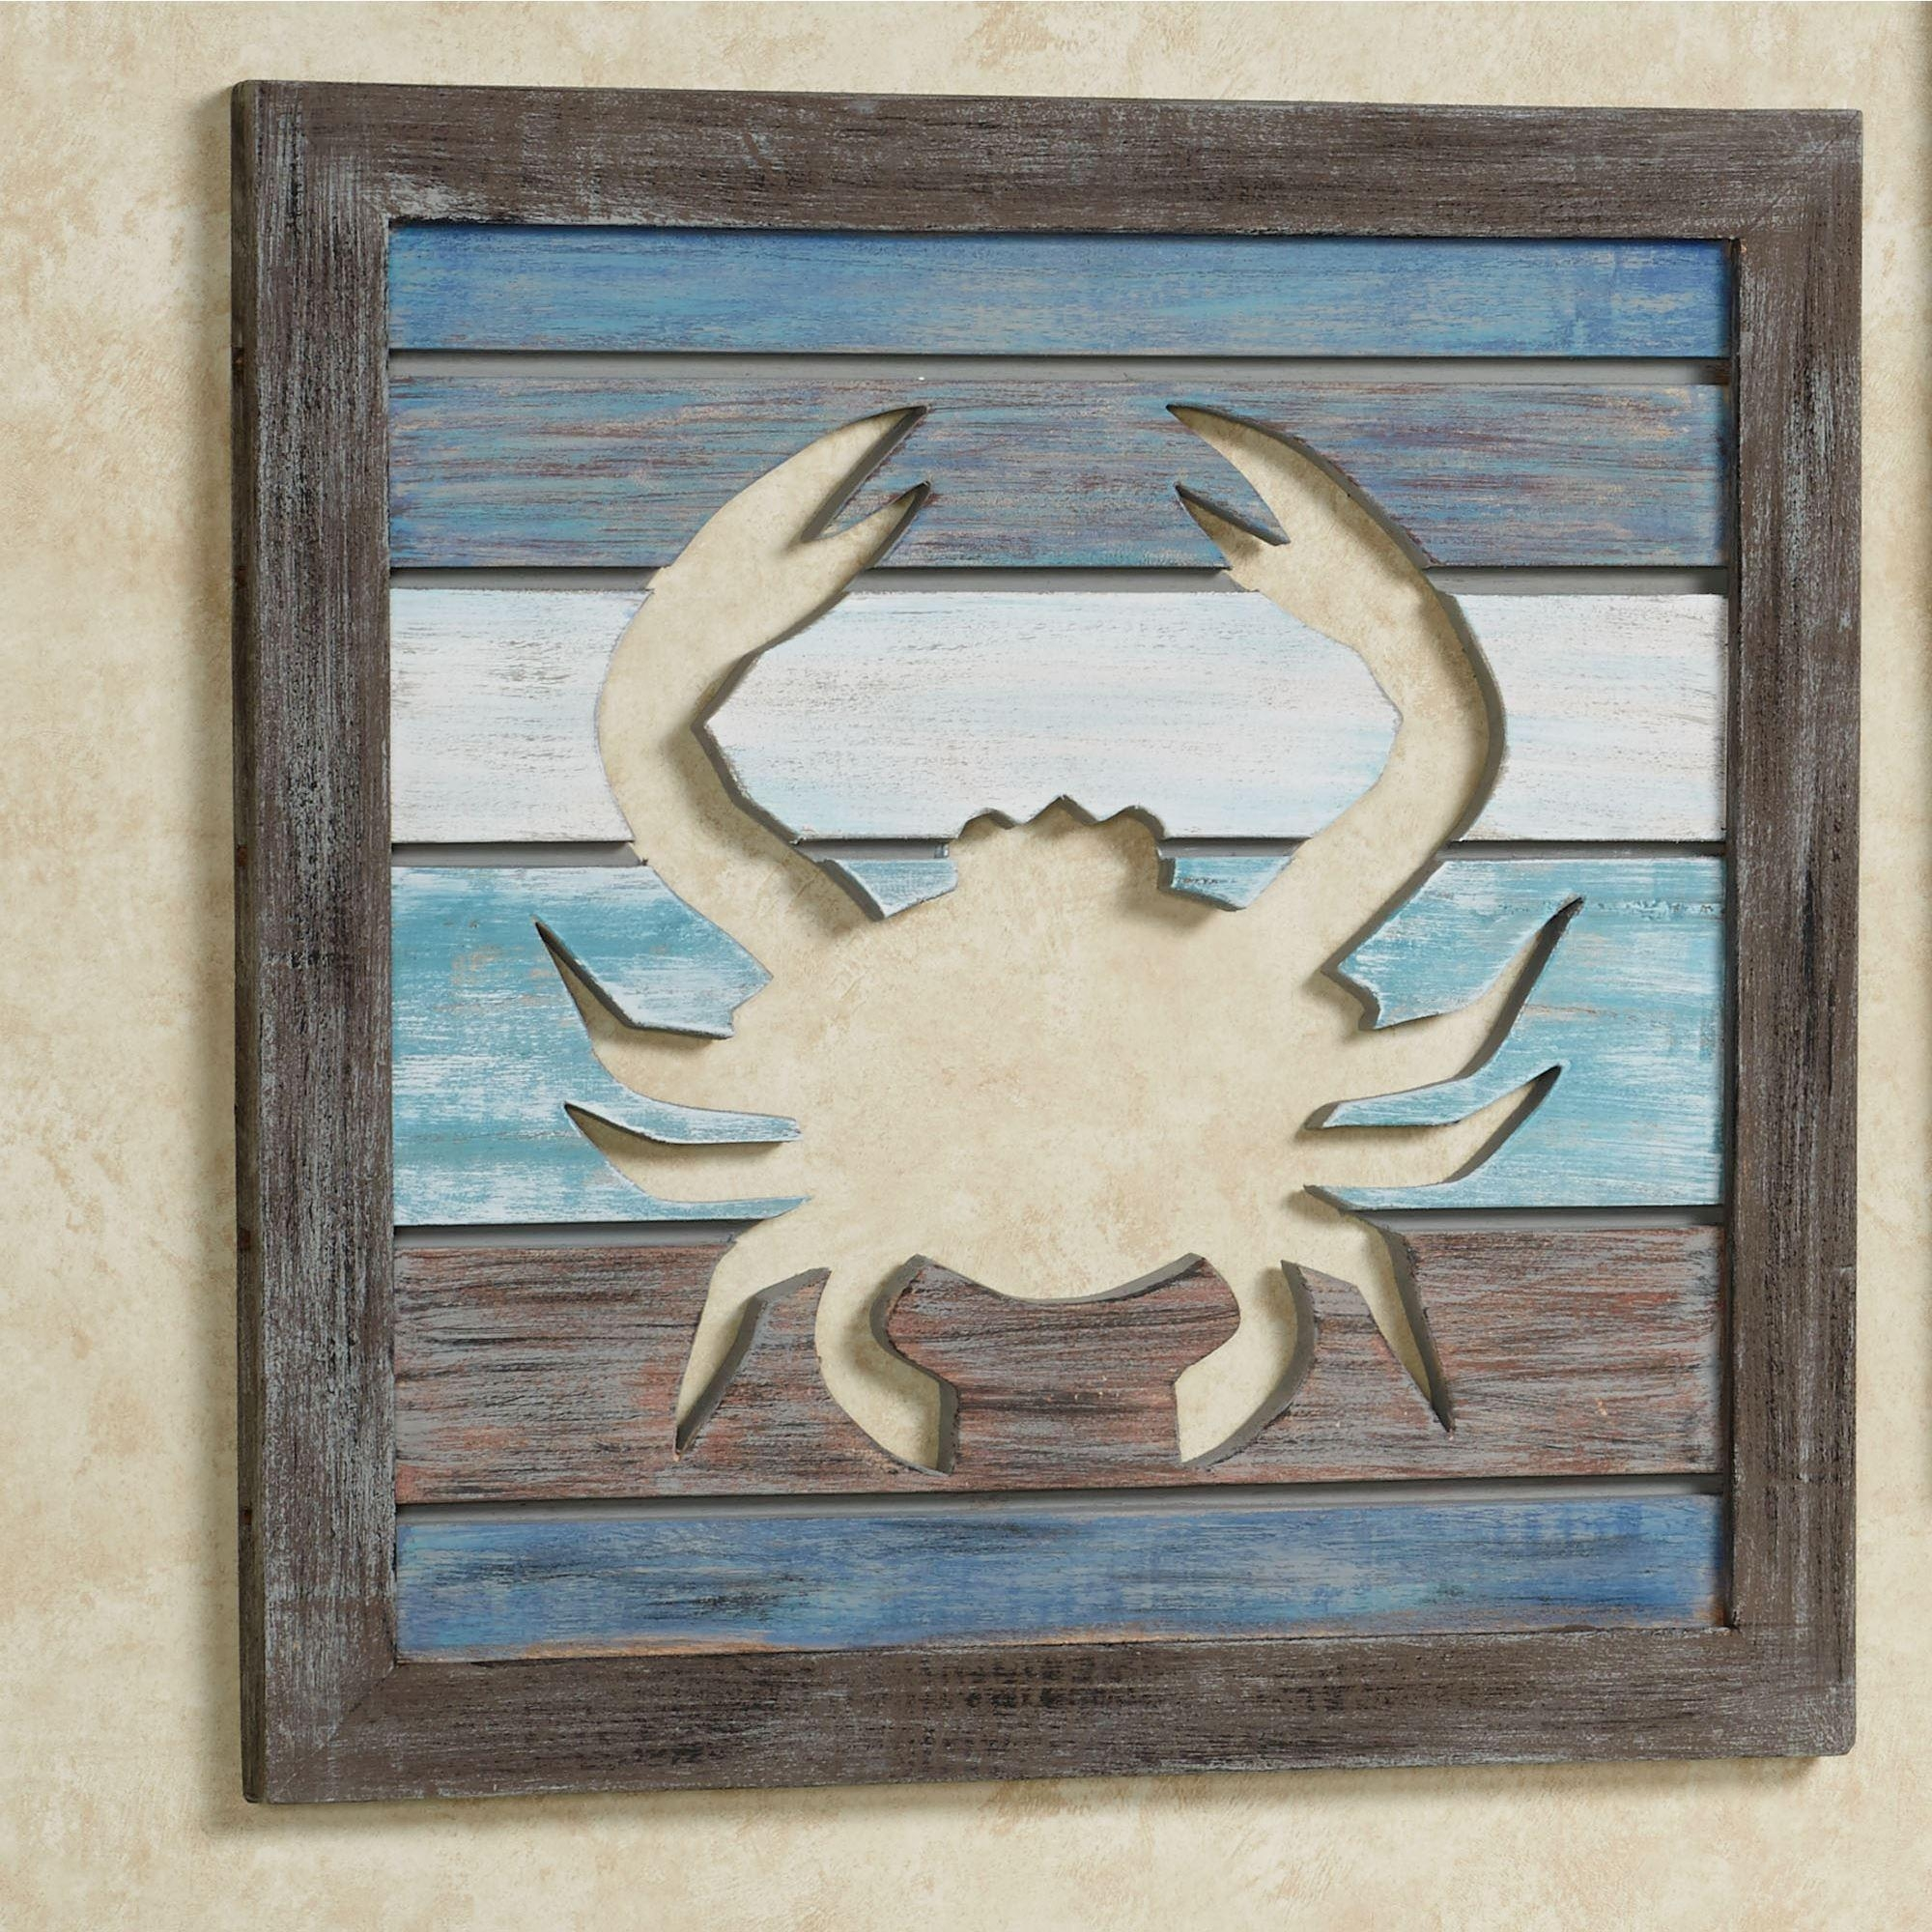 Sealife Cutout Slat Indoor Outdoor Coastal Wall Art Pertaining To Blue And Brown Wall Art (View 12 of 20)